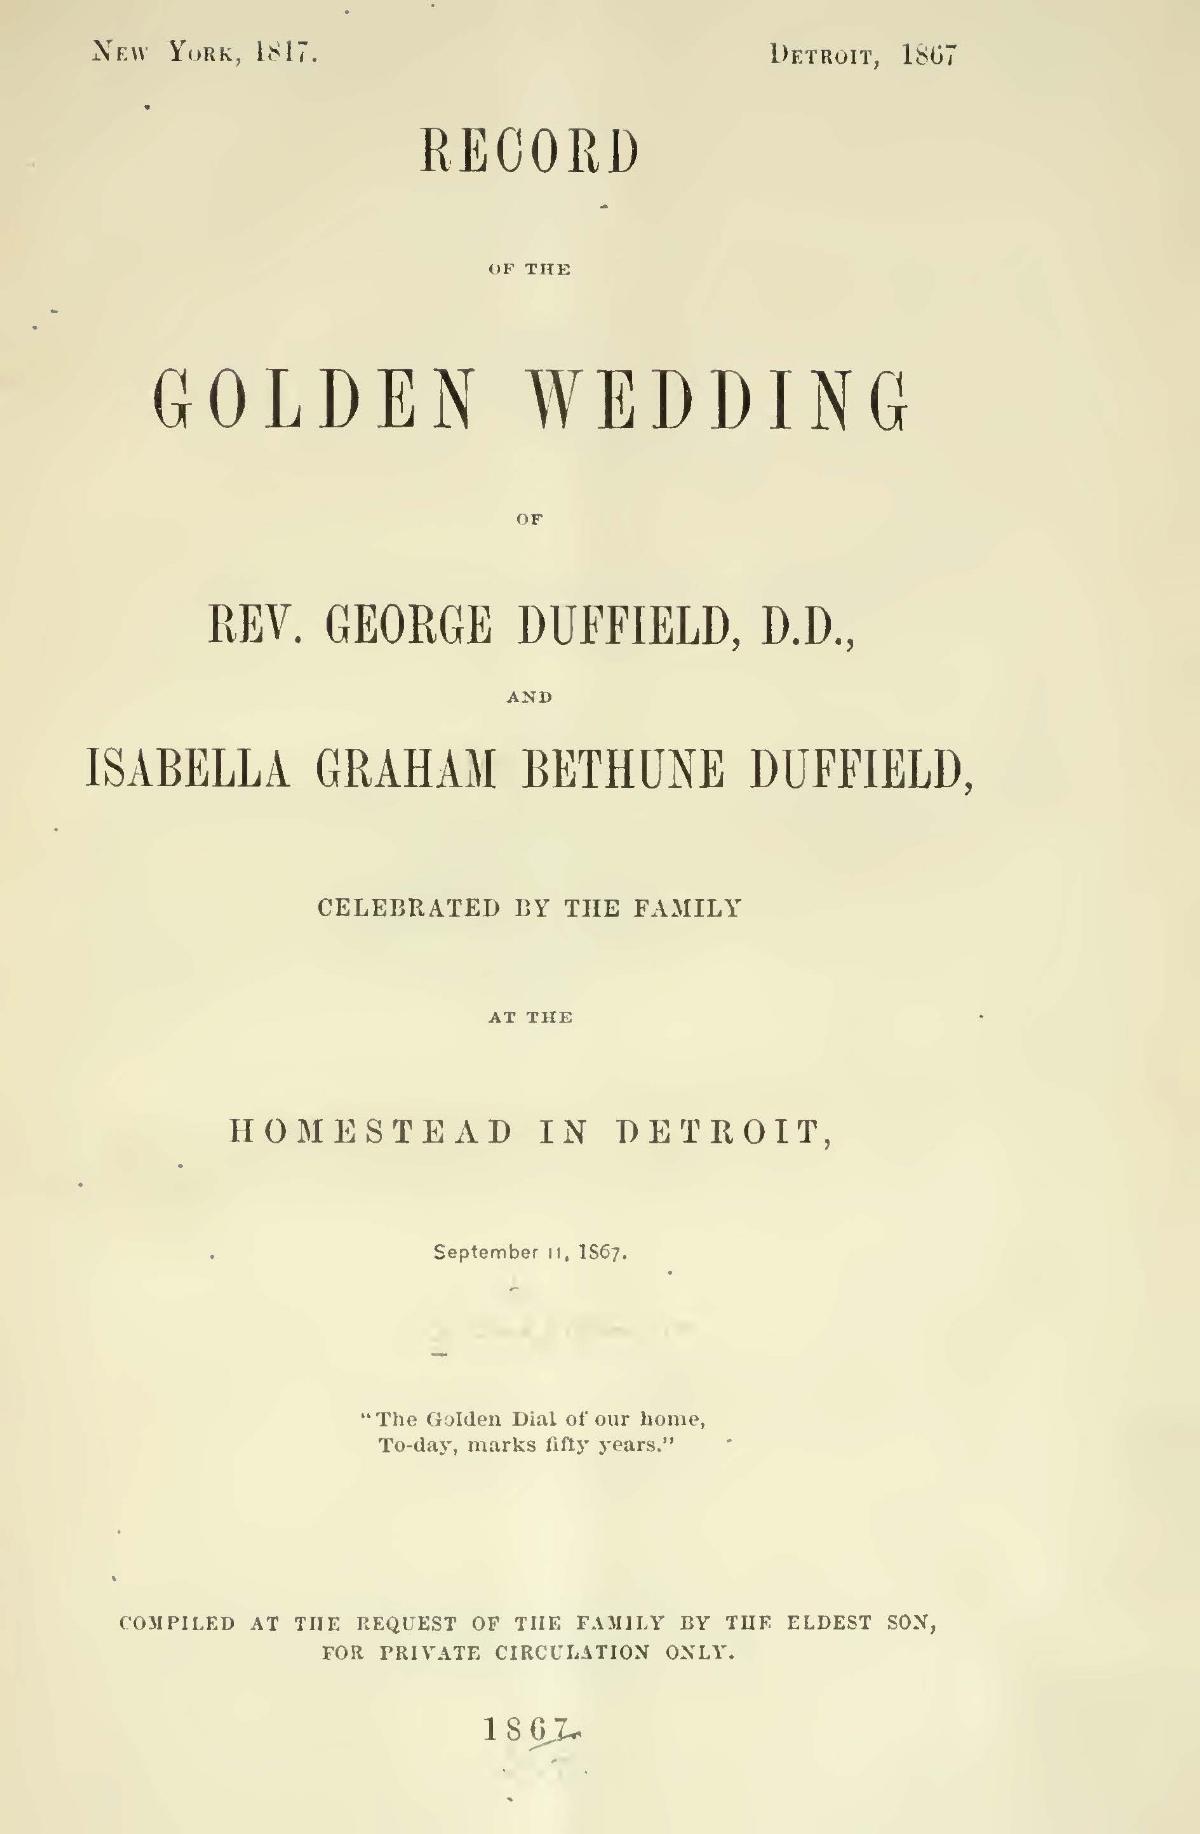 Duffield, V, George, Record of the Golden Wedding Title Page.jpg